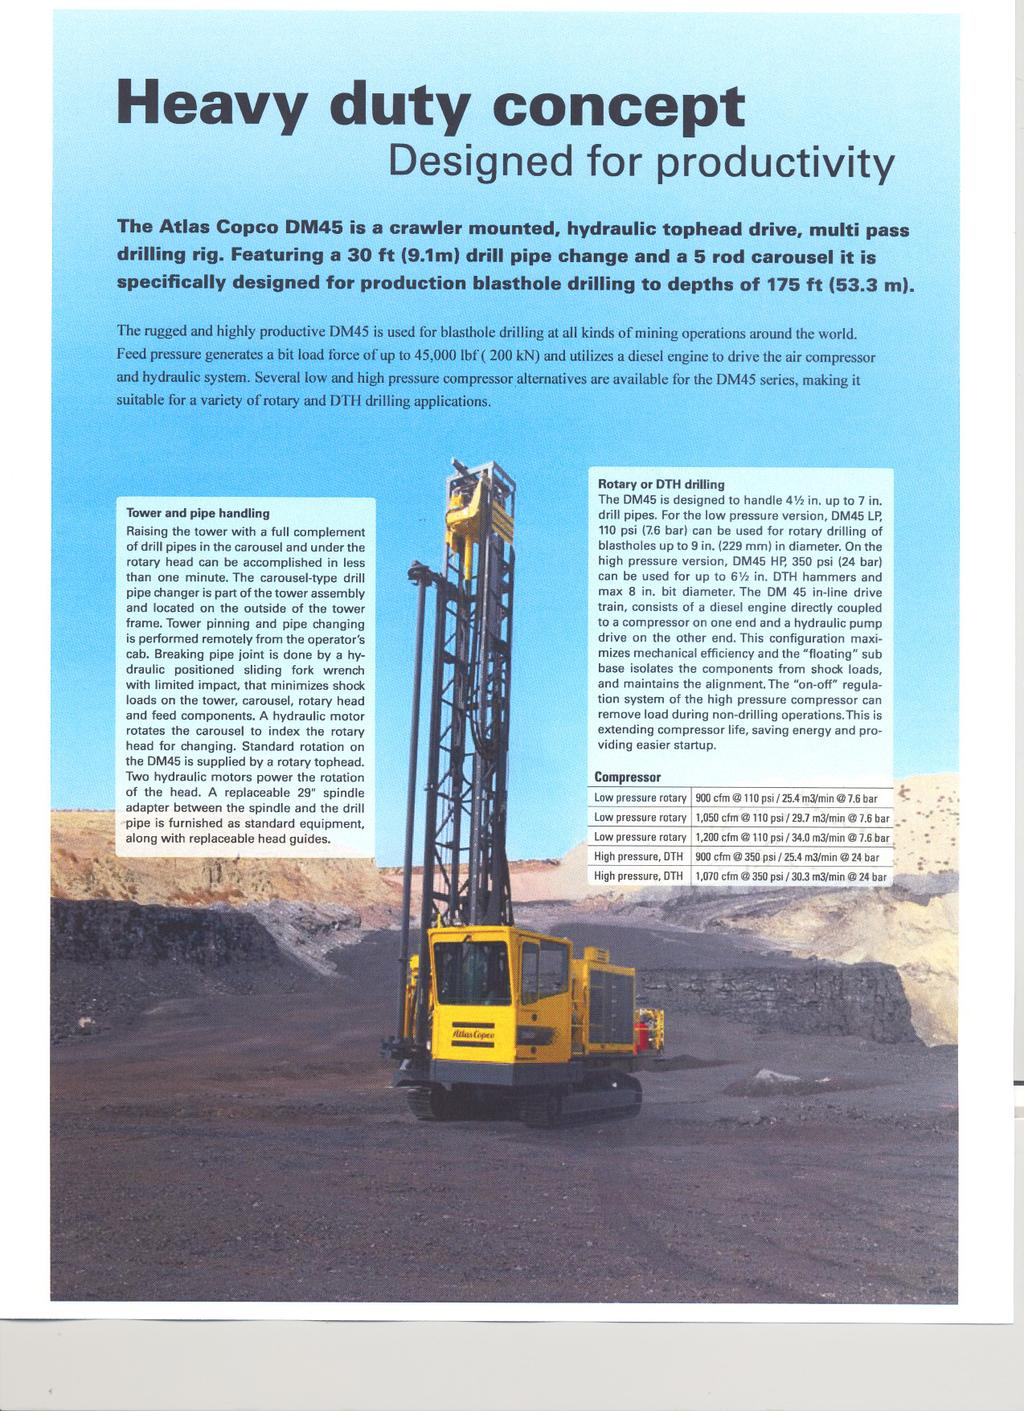 Heavy duty concept Designed for productivity The Atlas Copco DM45 is a crawler mounted, hydraulic tophead drive, multi pass drilling rig Featuring a 30 ft (91m) drill pipe change and a 5 rod carousel